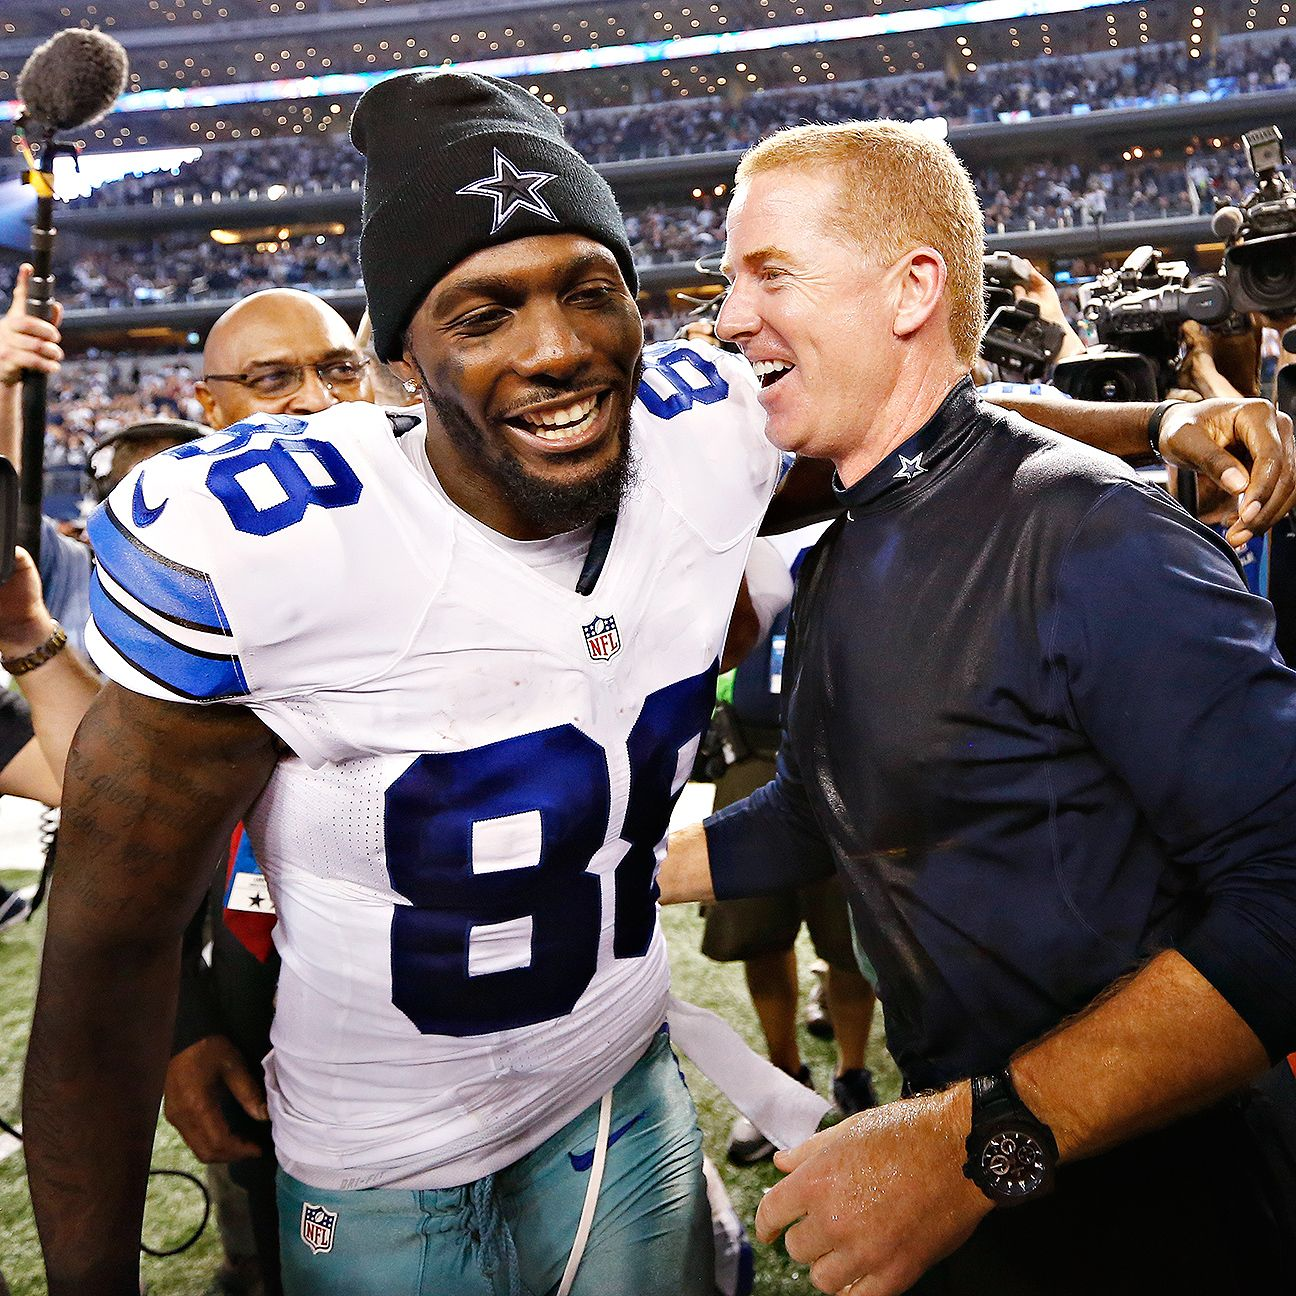 Jason Garrett has had to balance business, football more